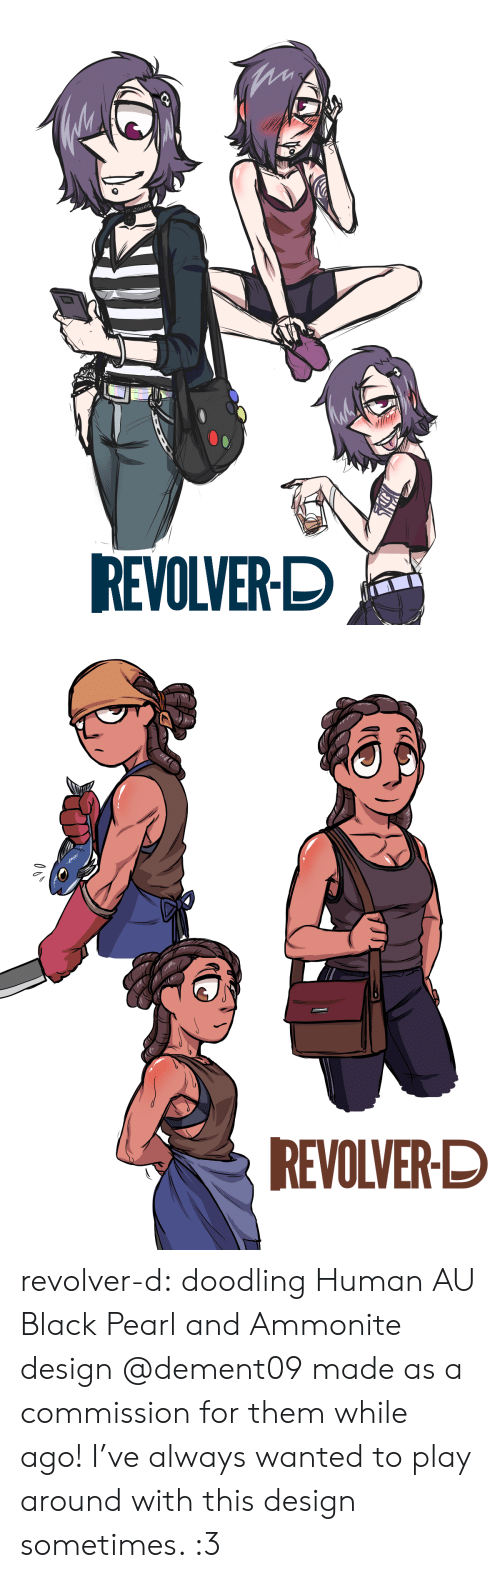 revolver: REVOLVER-D   REVOLVER-D revolver-d:    doodling Human AU Black Pearl and Ammonite design @dement09made as a commission for them while ago!I've always wanted to play around with this design sometimes. :3